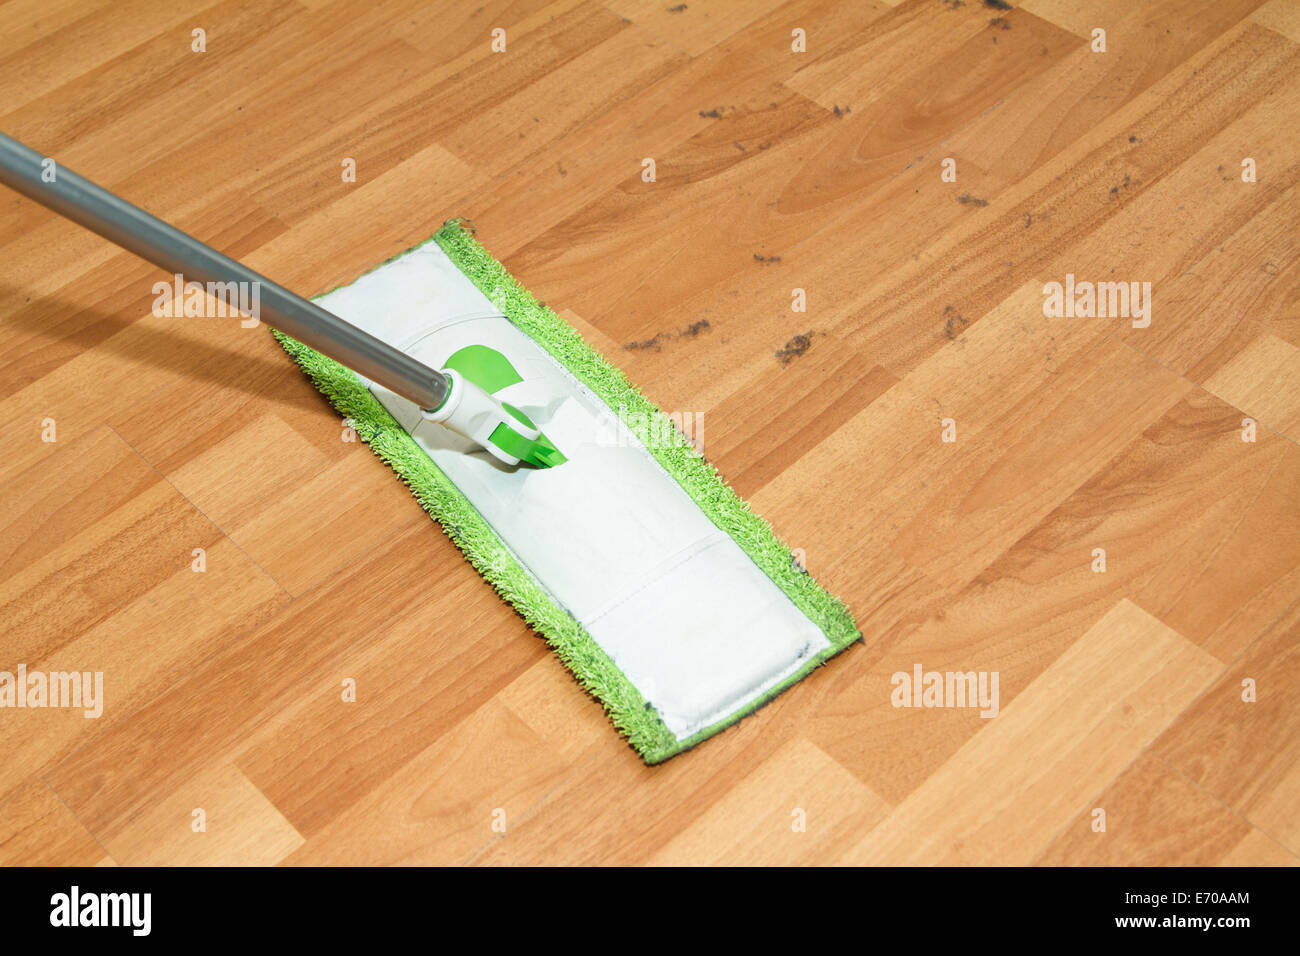 Mop cleaning and washing the wooden parquet floor in room. - Stock Image